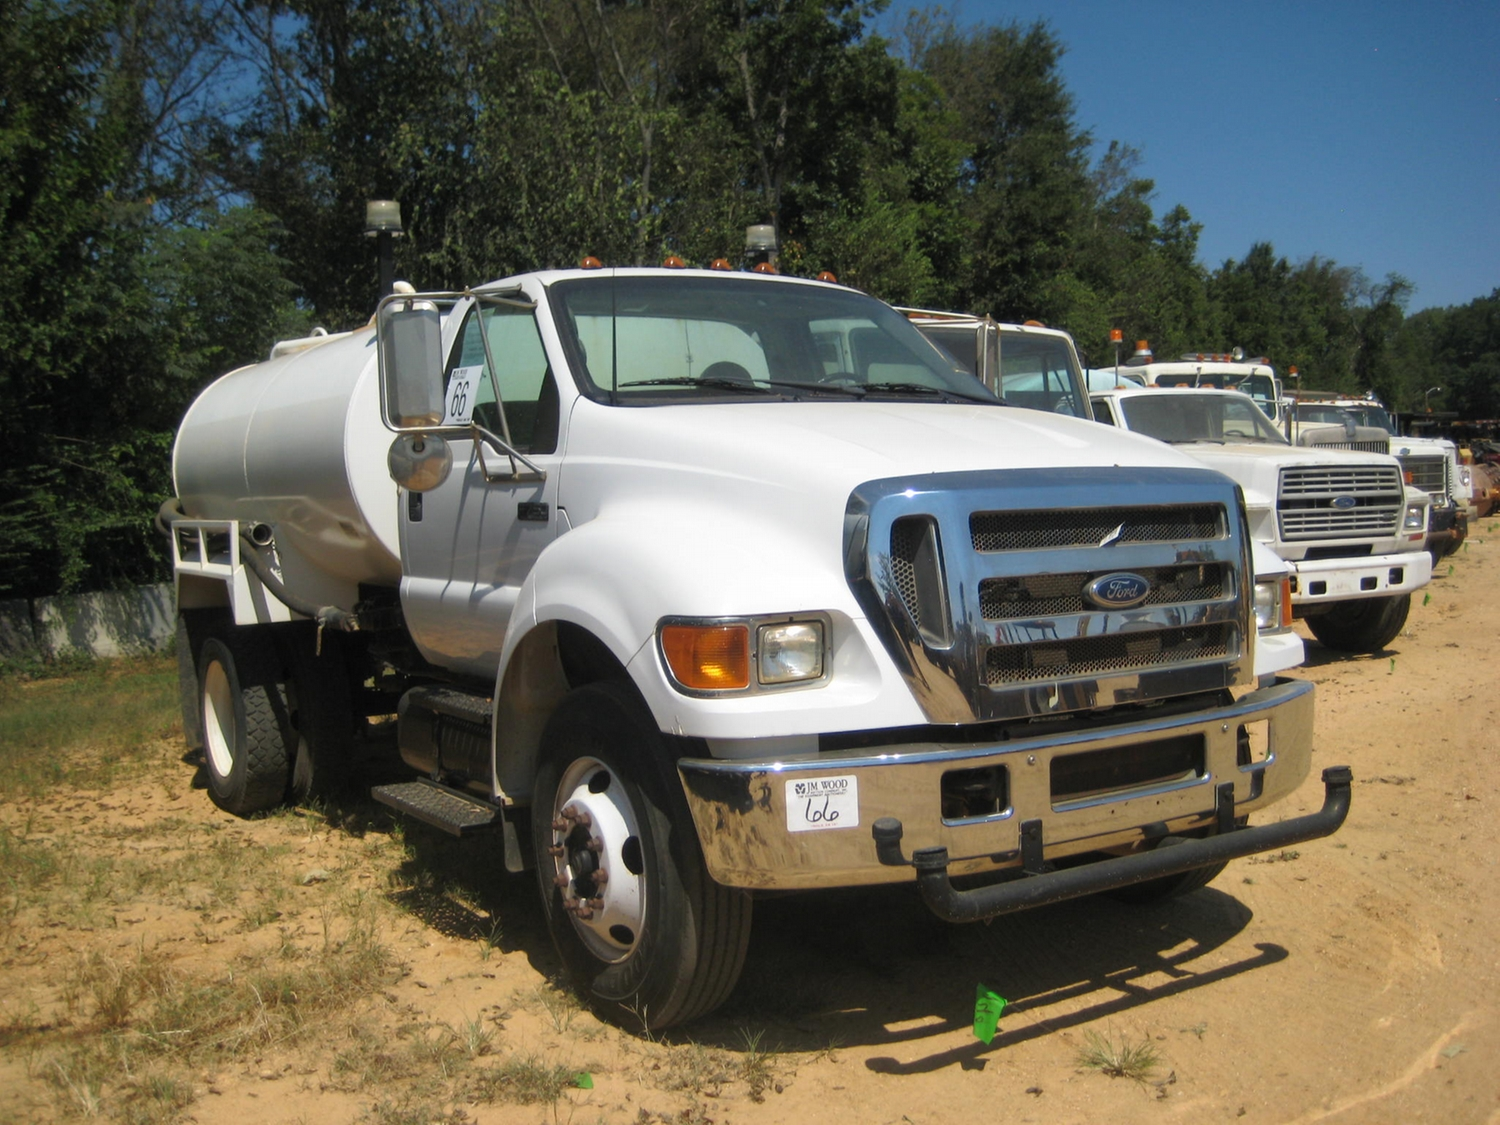 hight resolution of  image 2 2005 ford f750 super duty s a water truck